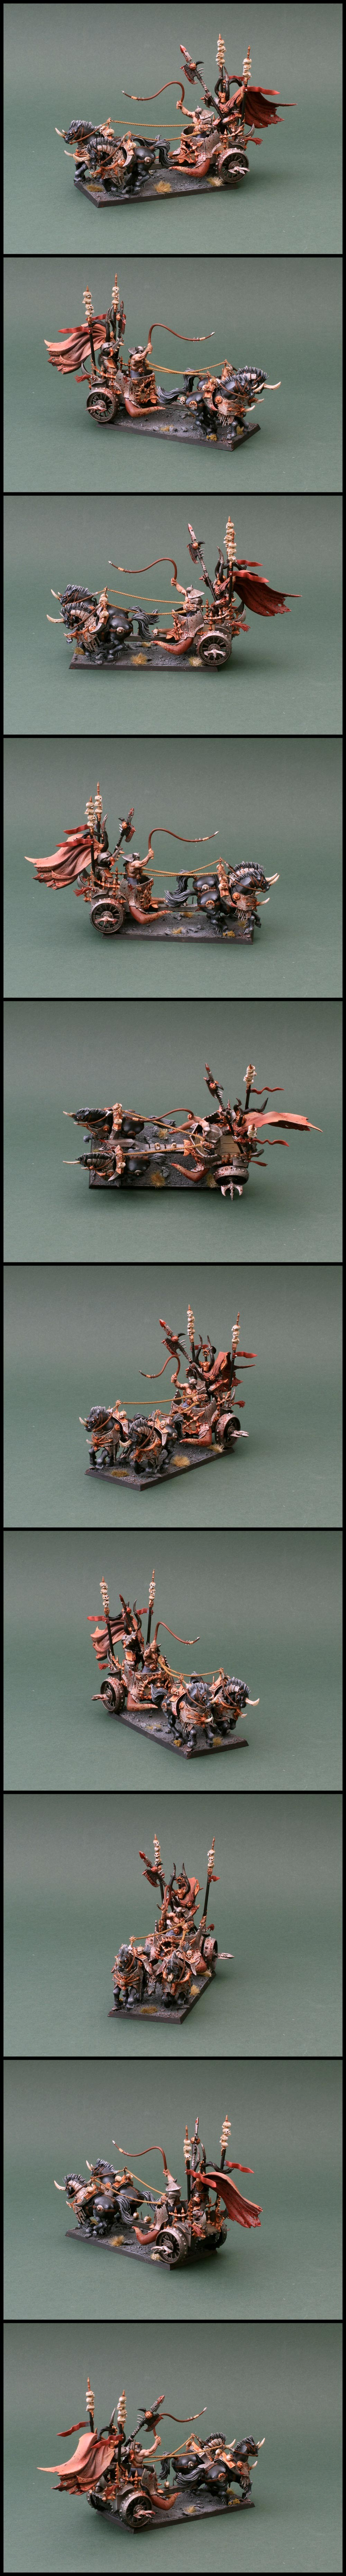 Warriors of Chaos - Chariot 2